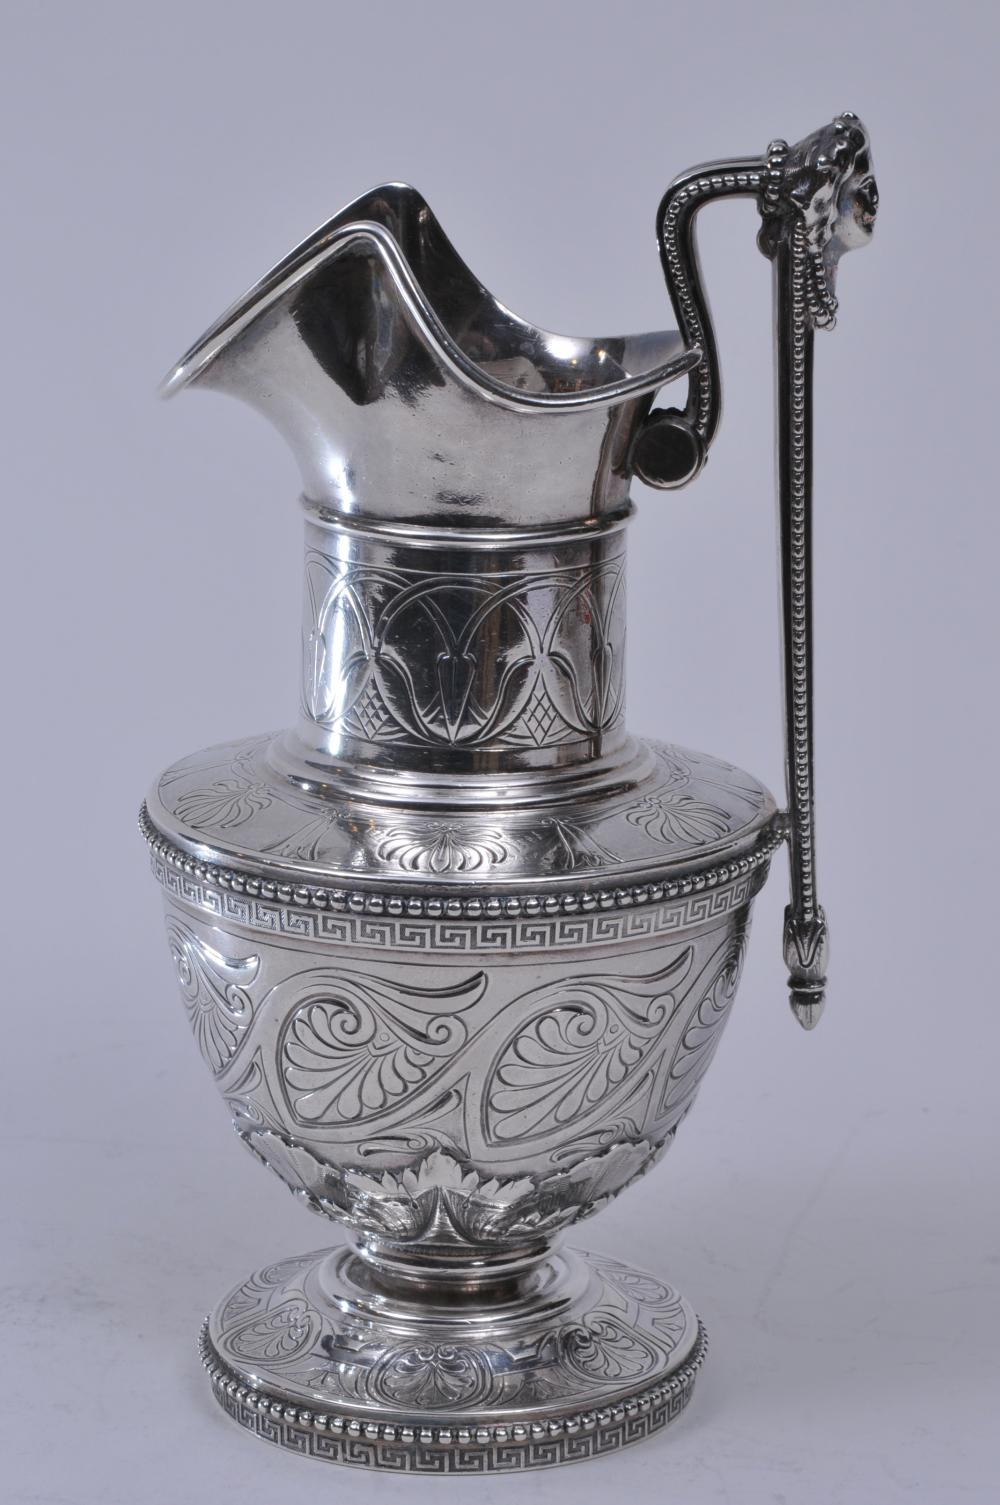 """Tiffany & Co. Makers. Sterling silver Victorian small handled ewer with figural head handle. Greek key and beaded borders. Relief and engraved leaf decoration. Heraldic crest near spout. 7-3/4"""" high. 13.5 ozt. Good condition."""